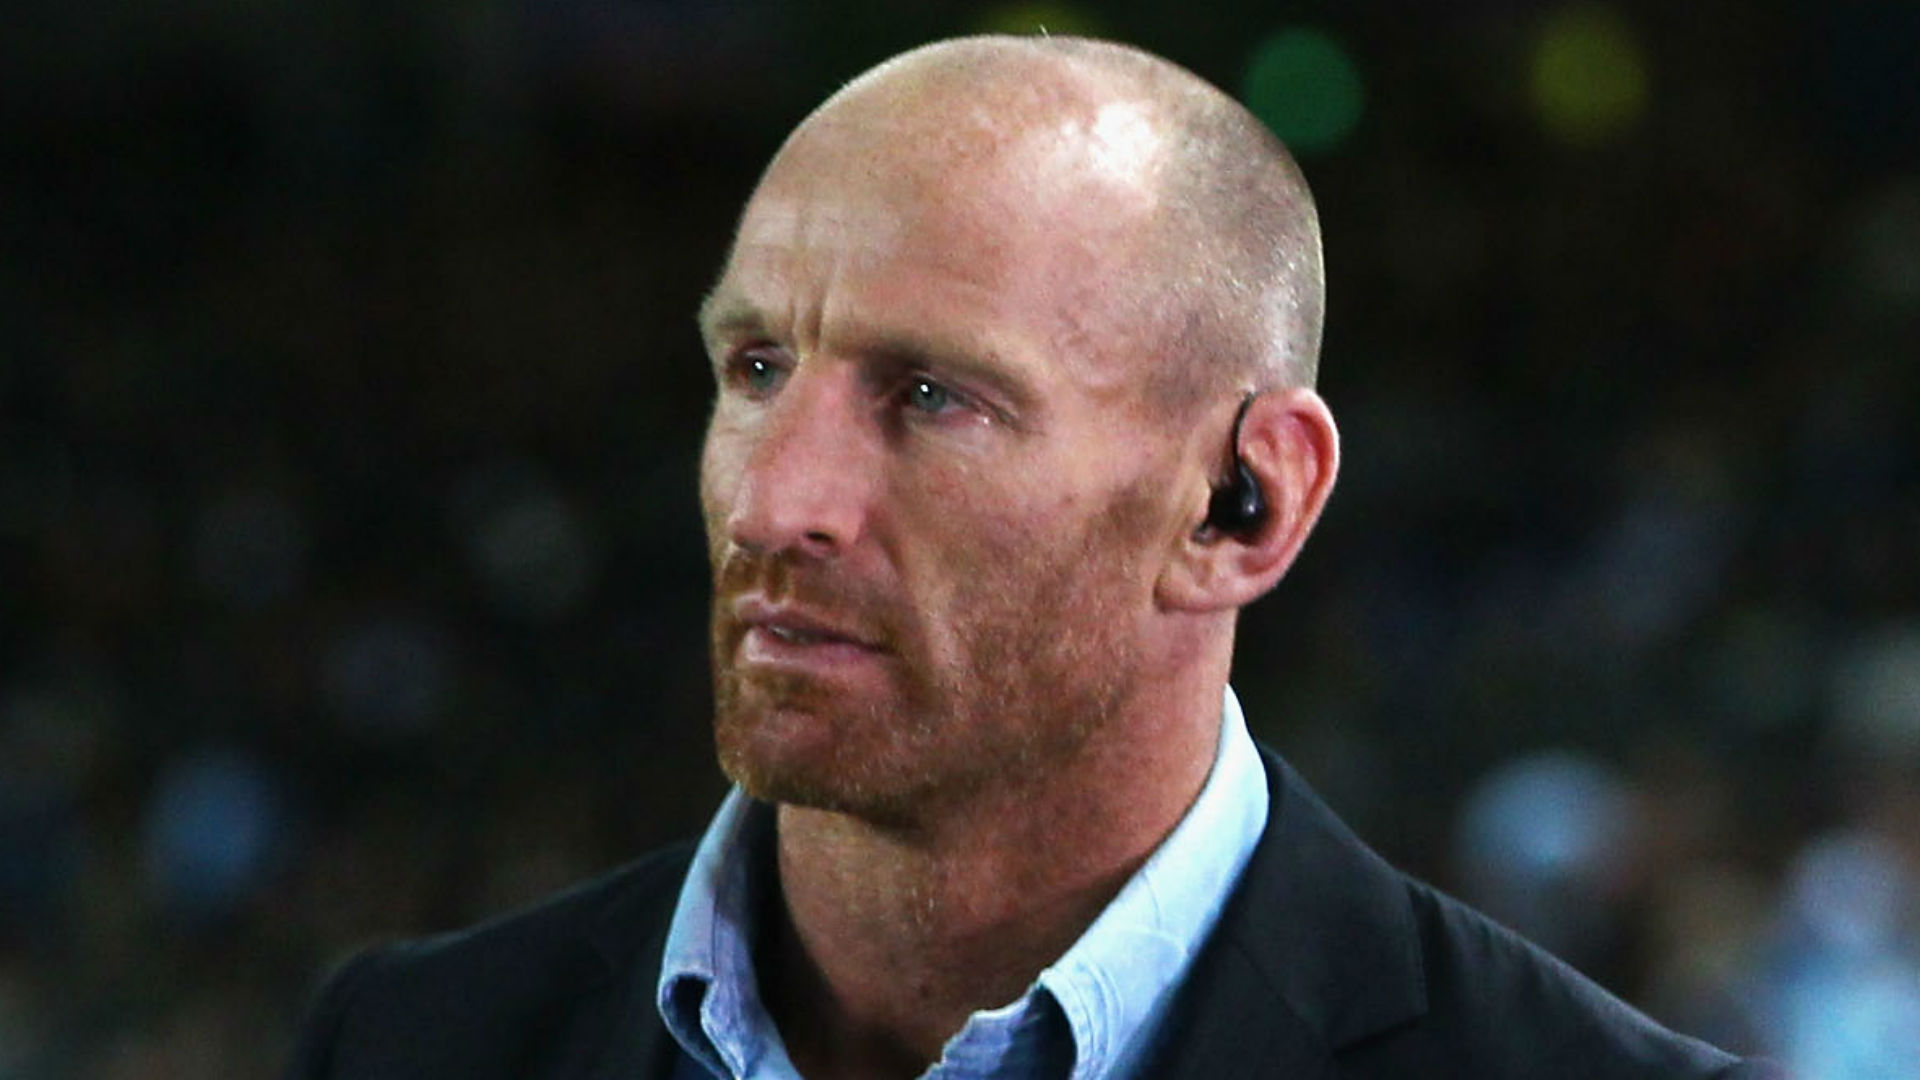 Wales rugby great Gareth Thomas reveals he's HIV positive